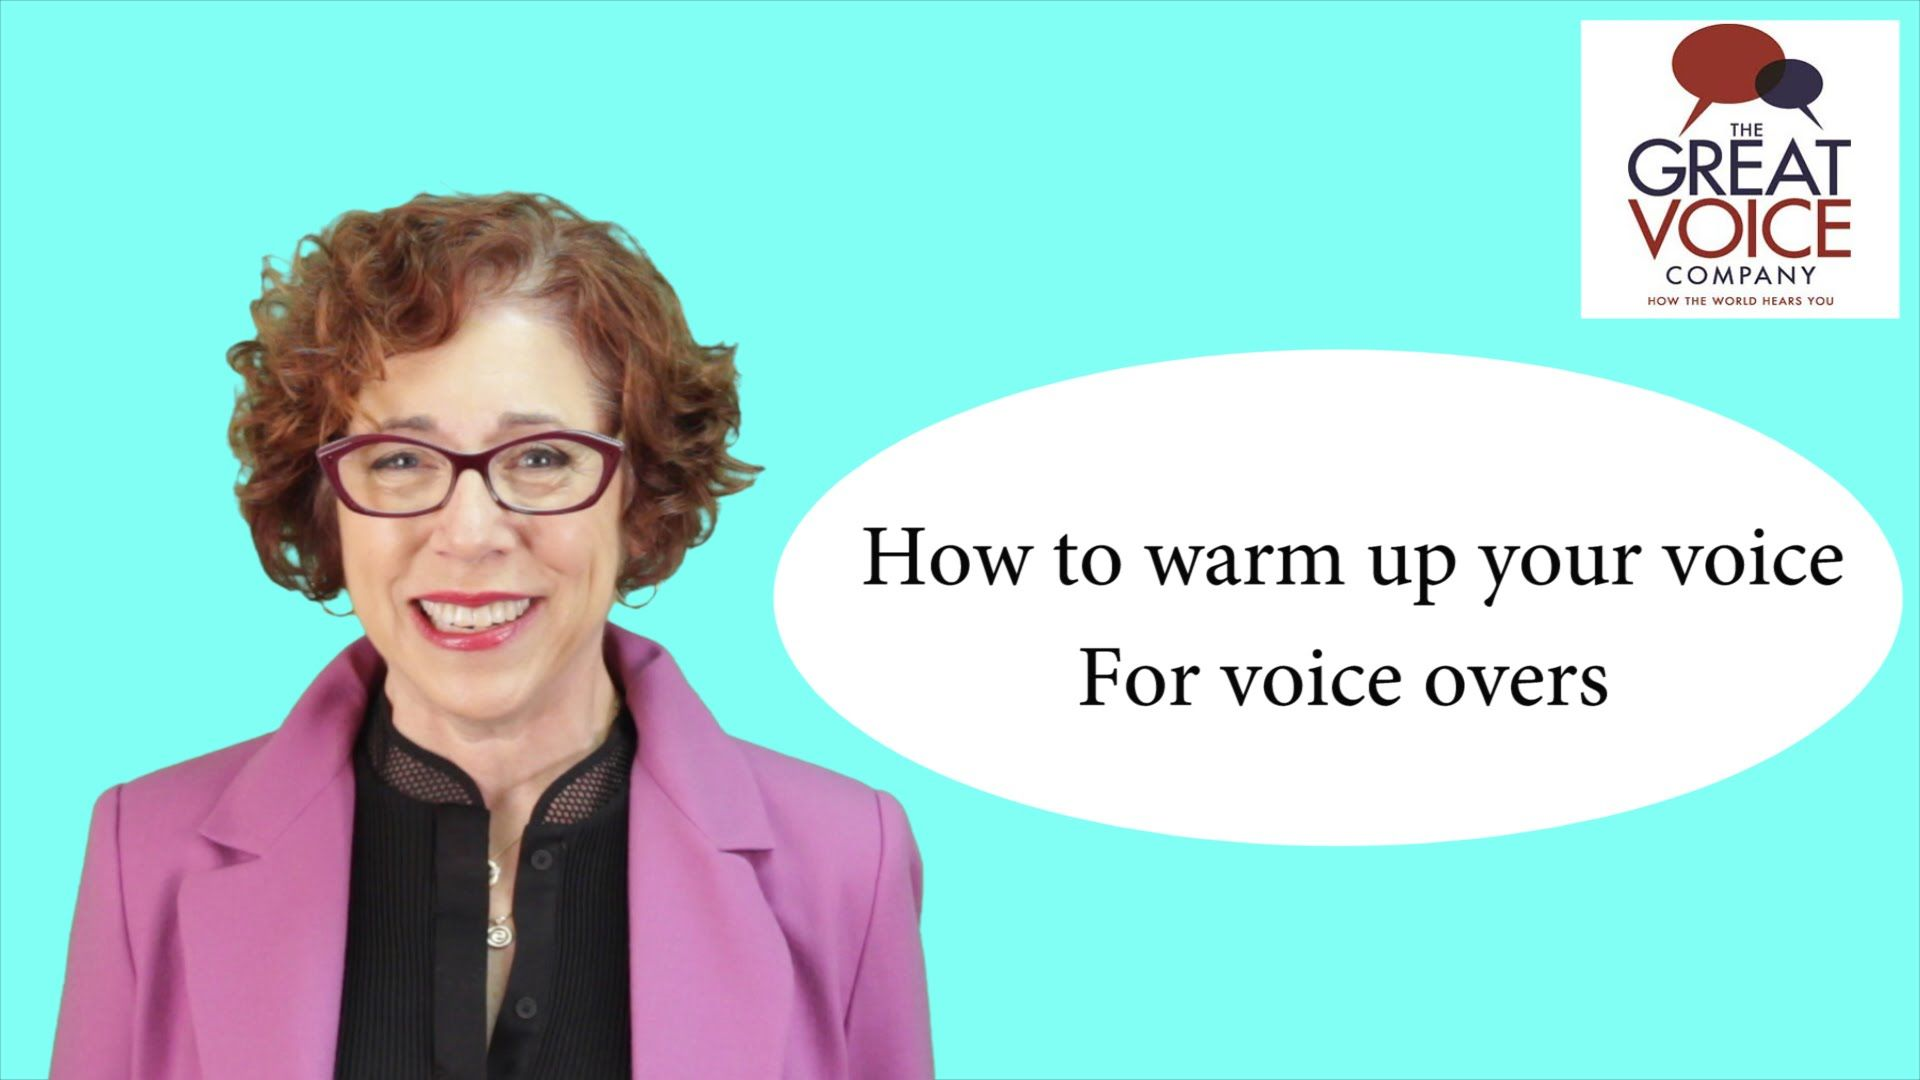 How to warm up your voice for voice overs The voice